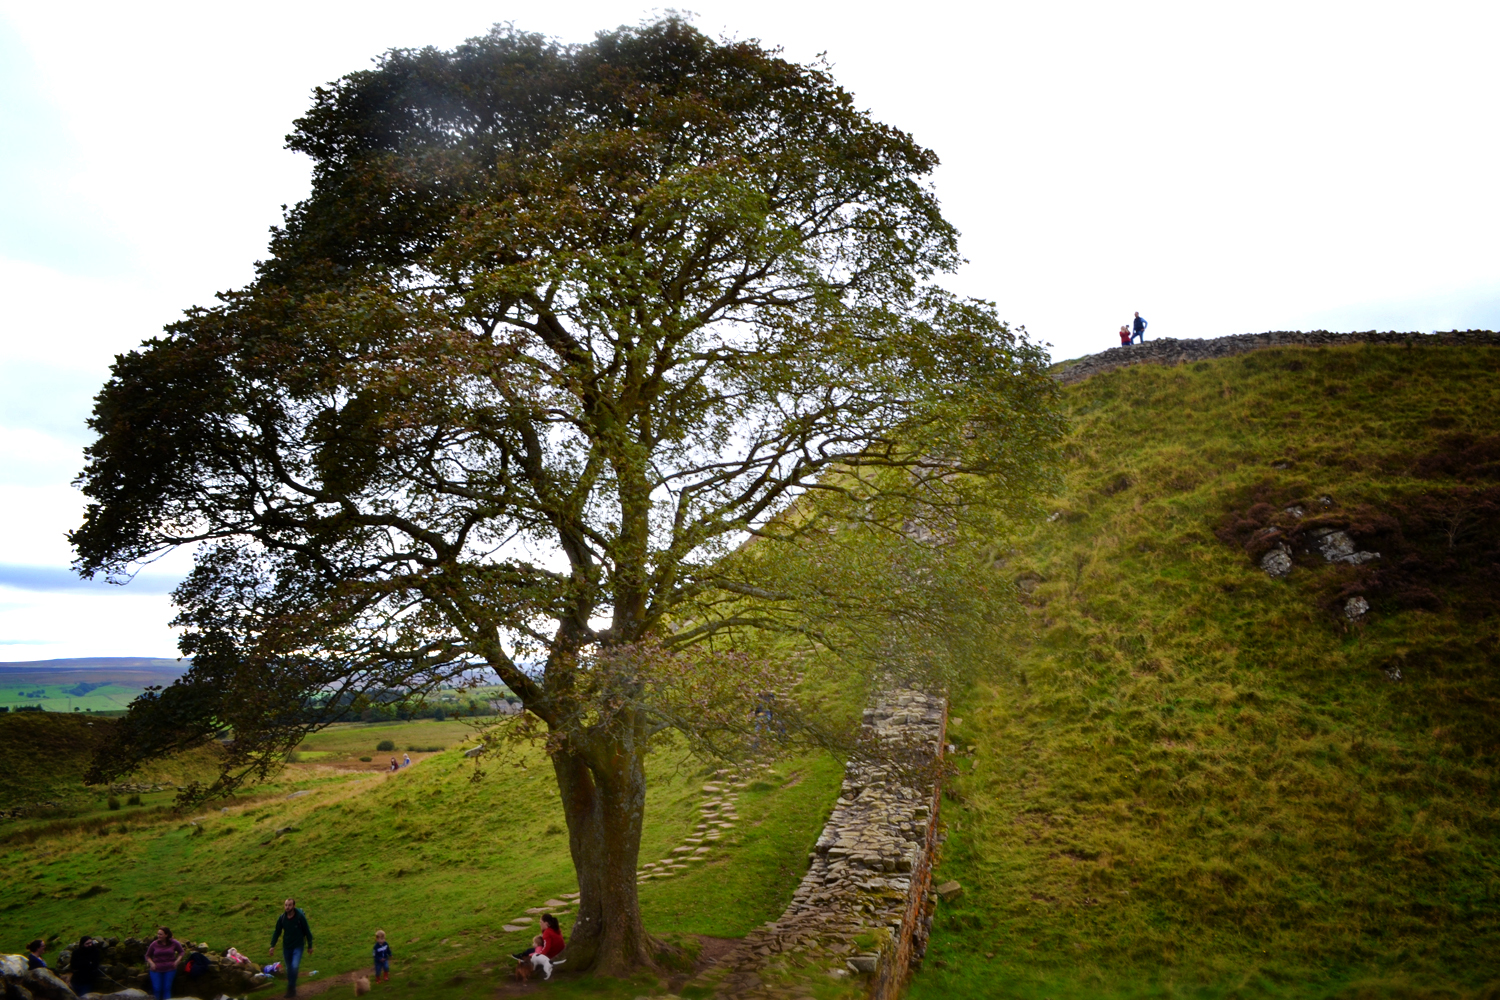 Visitors at Sycamore Gap